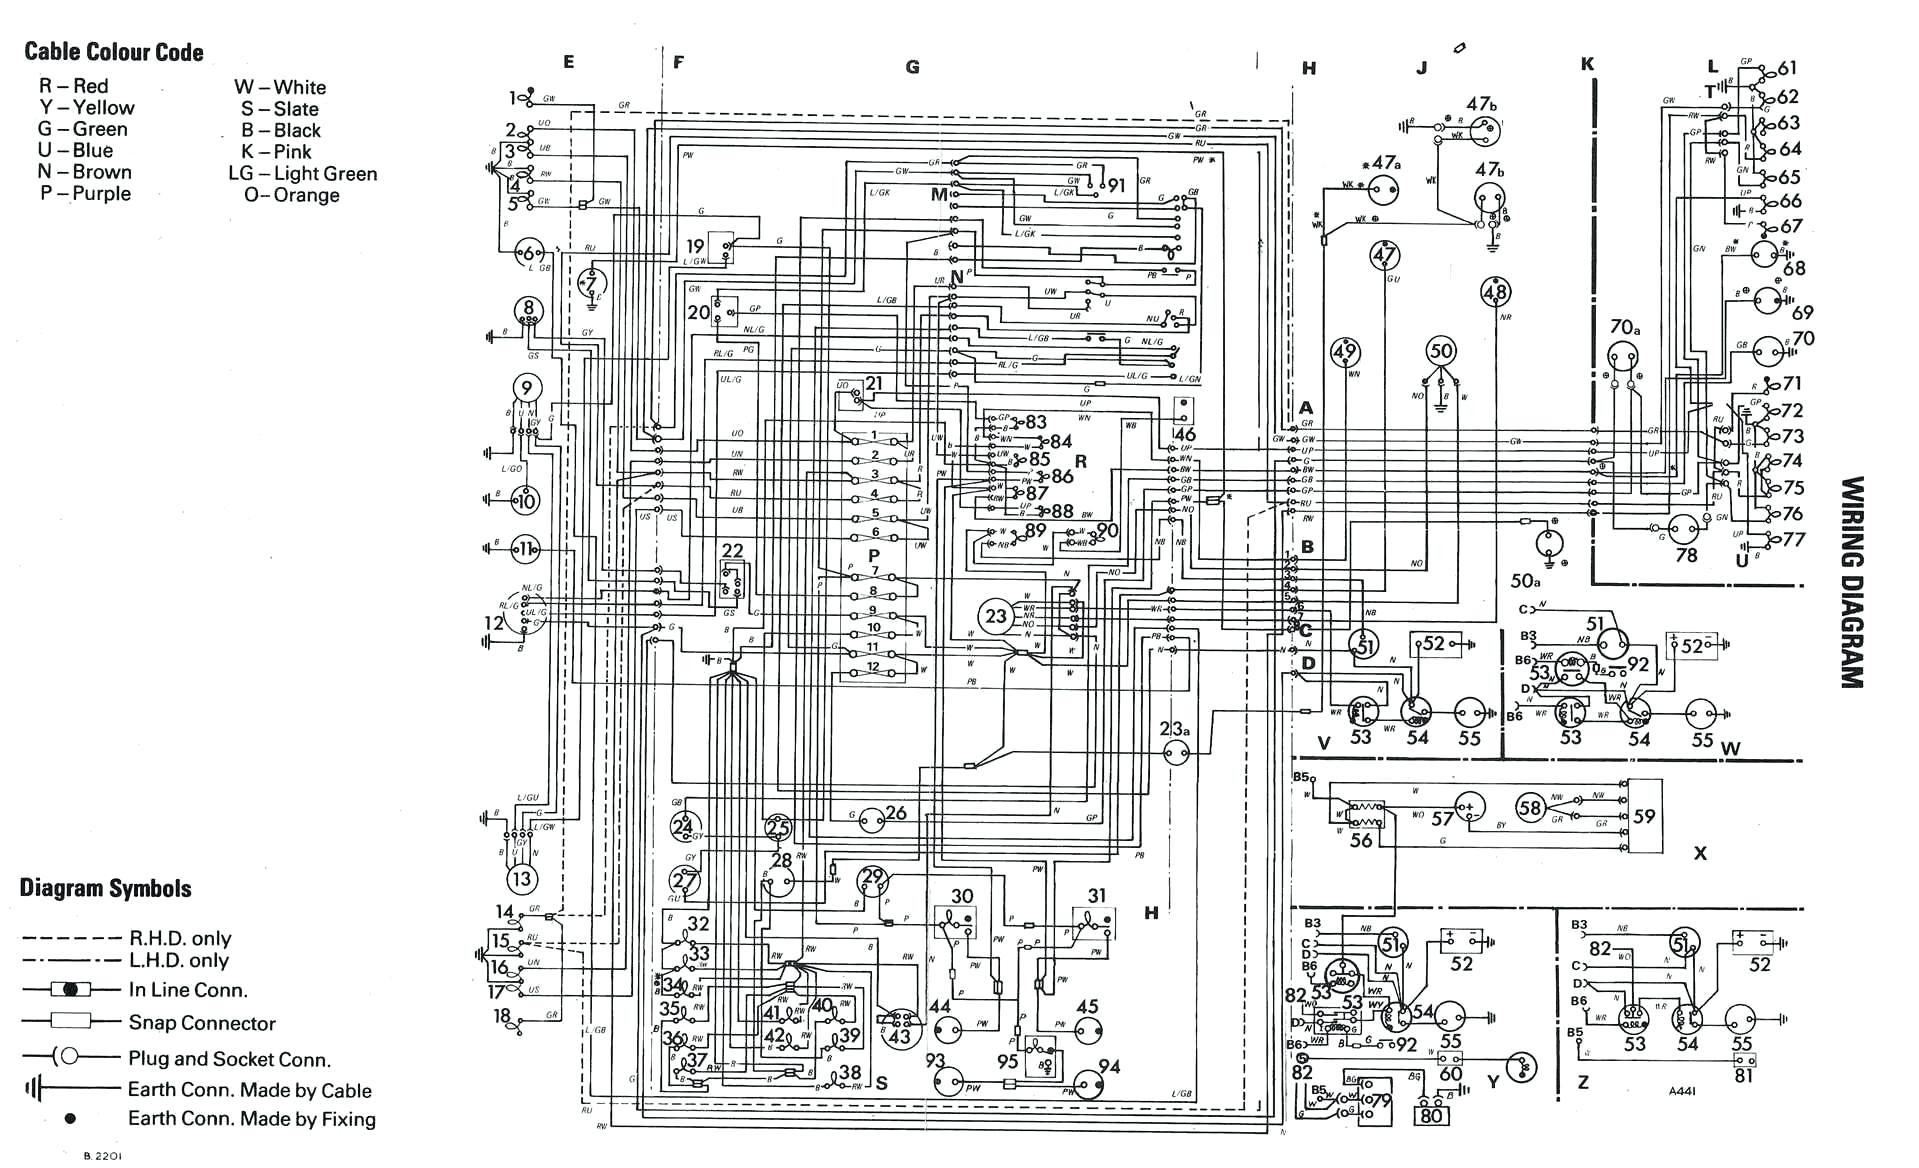 1970 vw beetle ignition switch wiring diagram